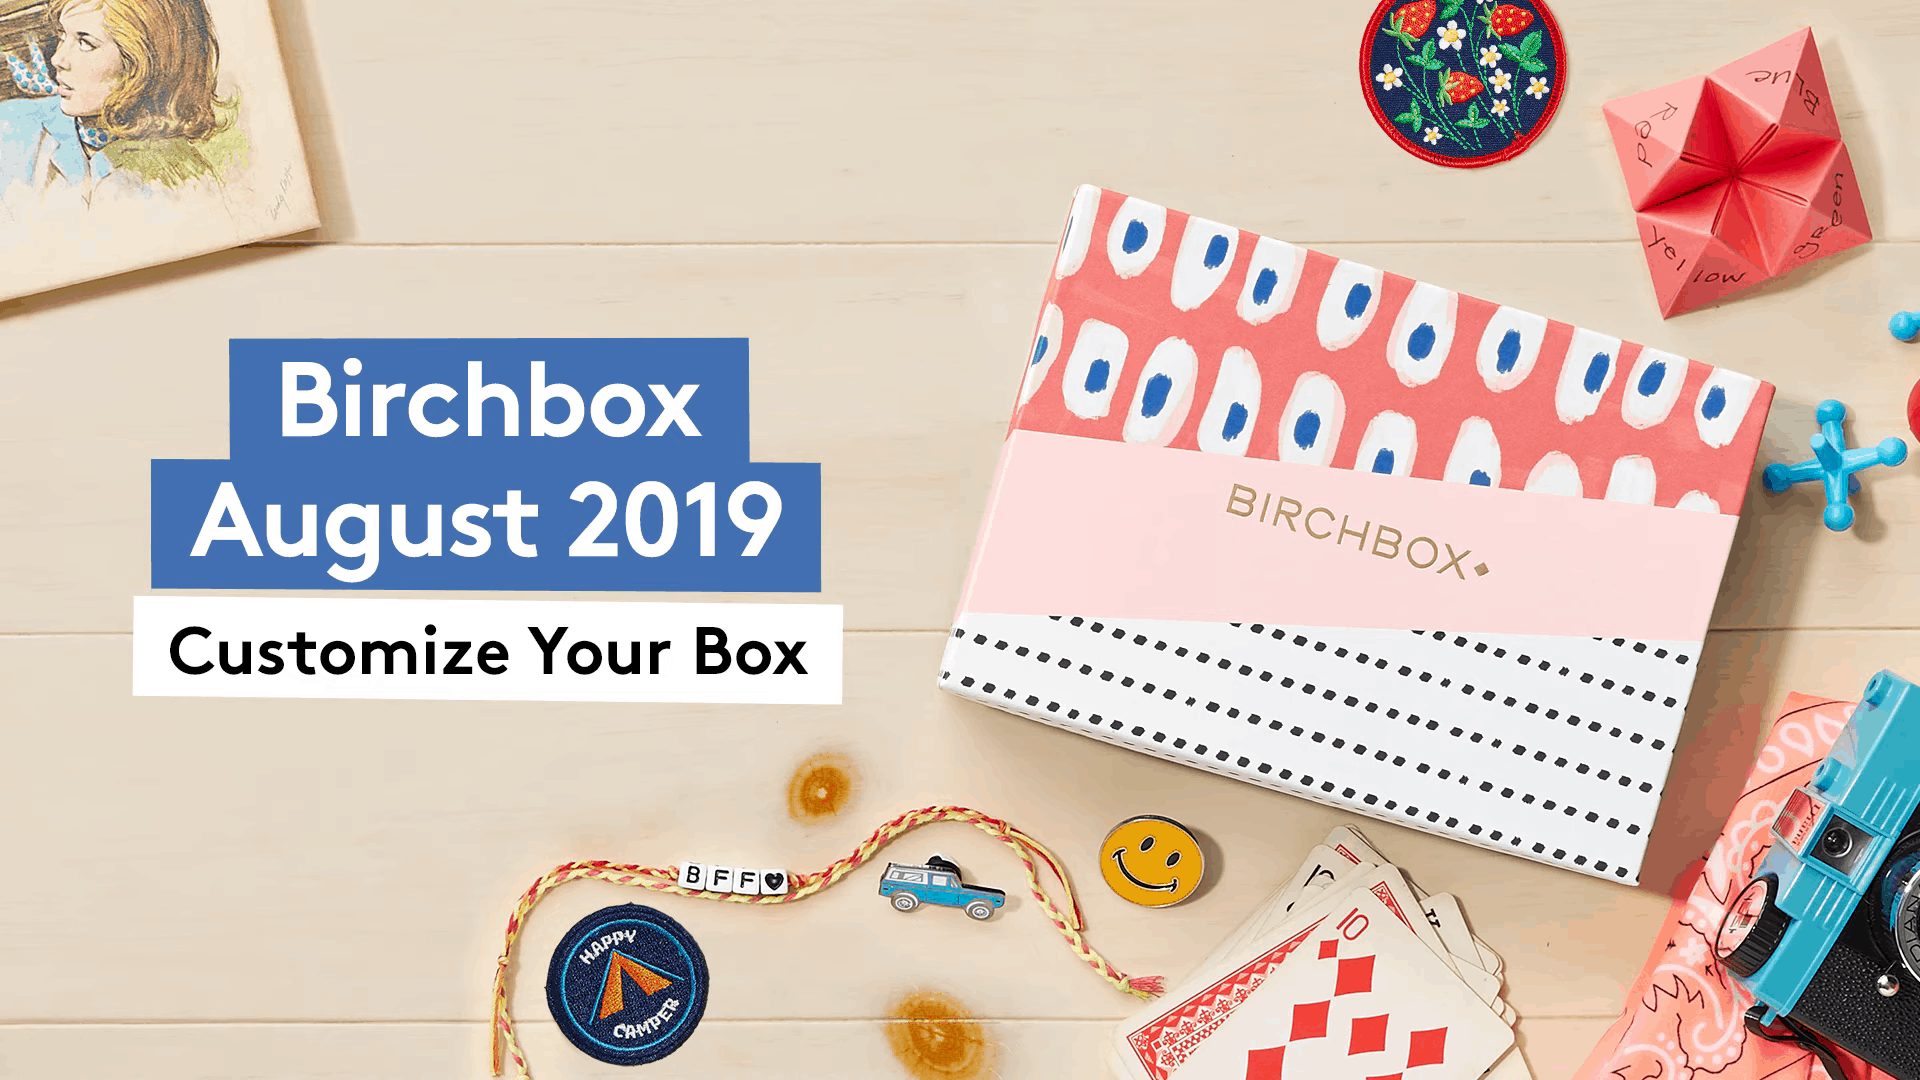 Birchbox August 2019 Selection Time!